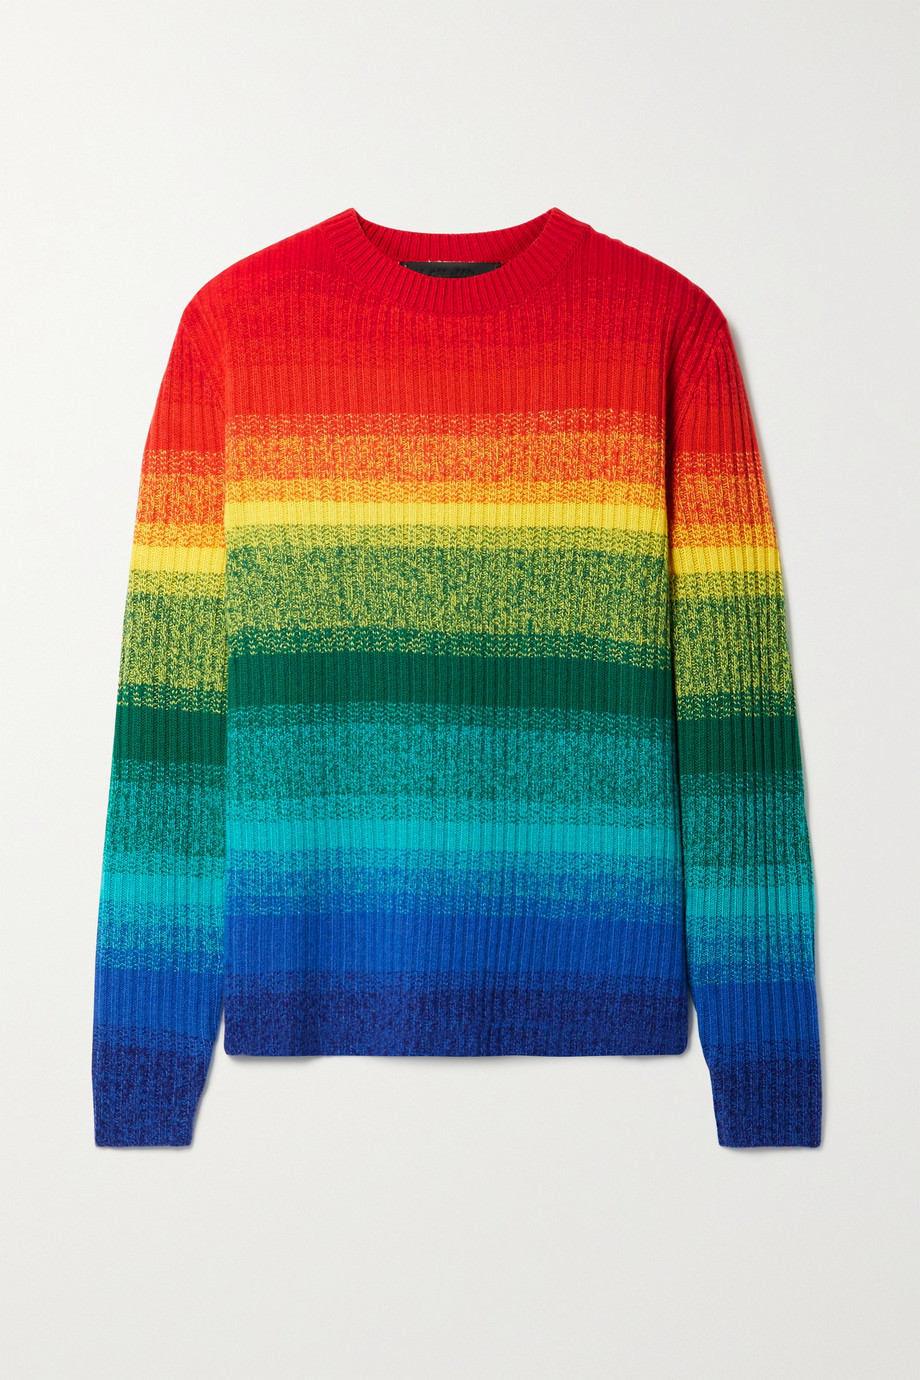 The Elder Statesman Morph ribbed striped cashmere sweater